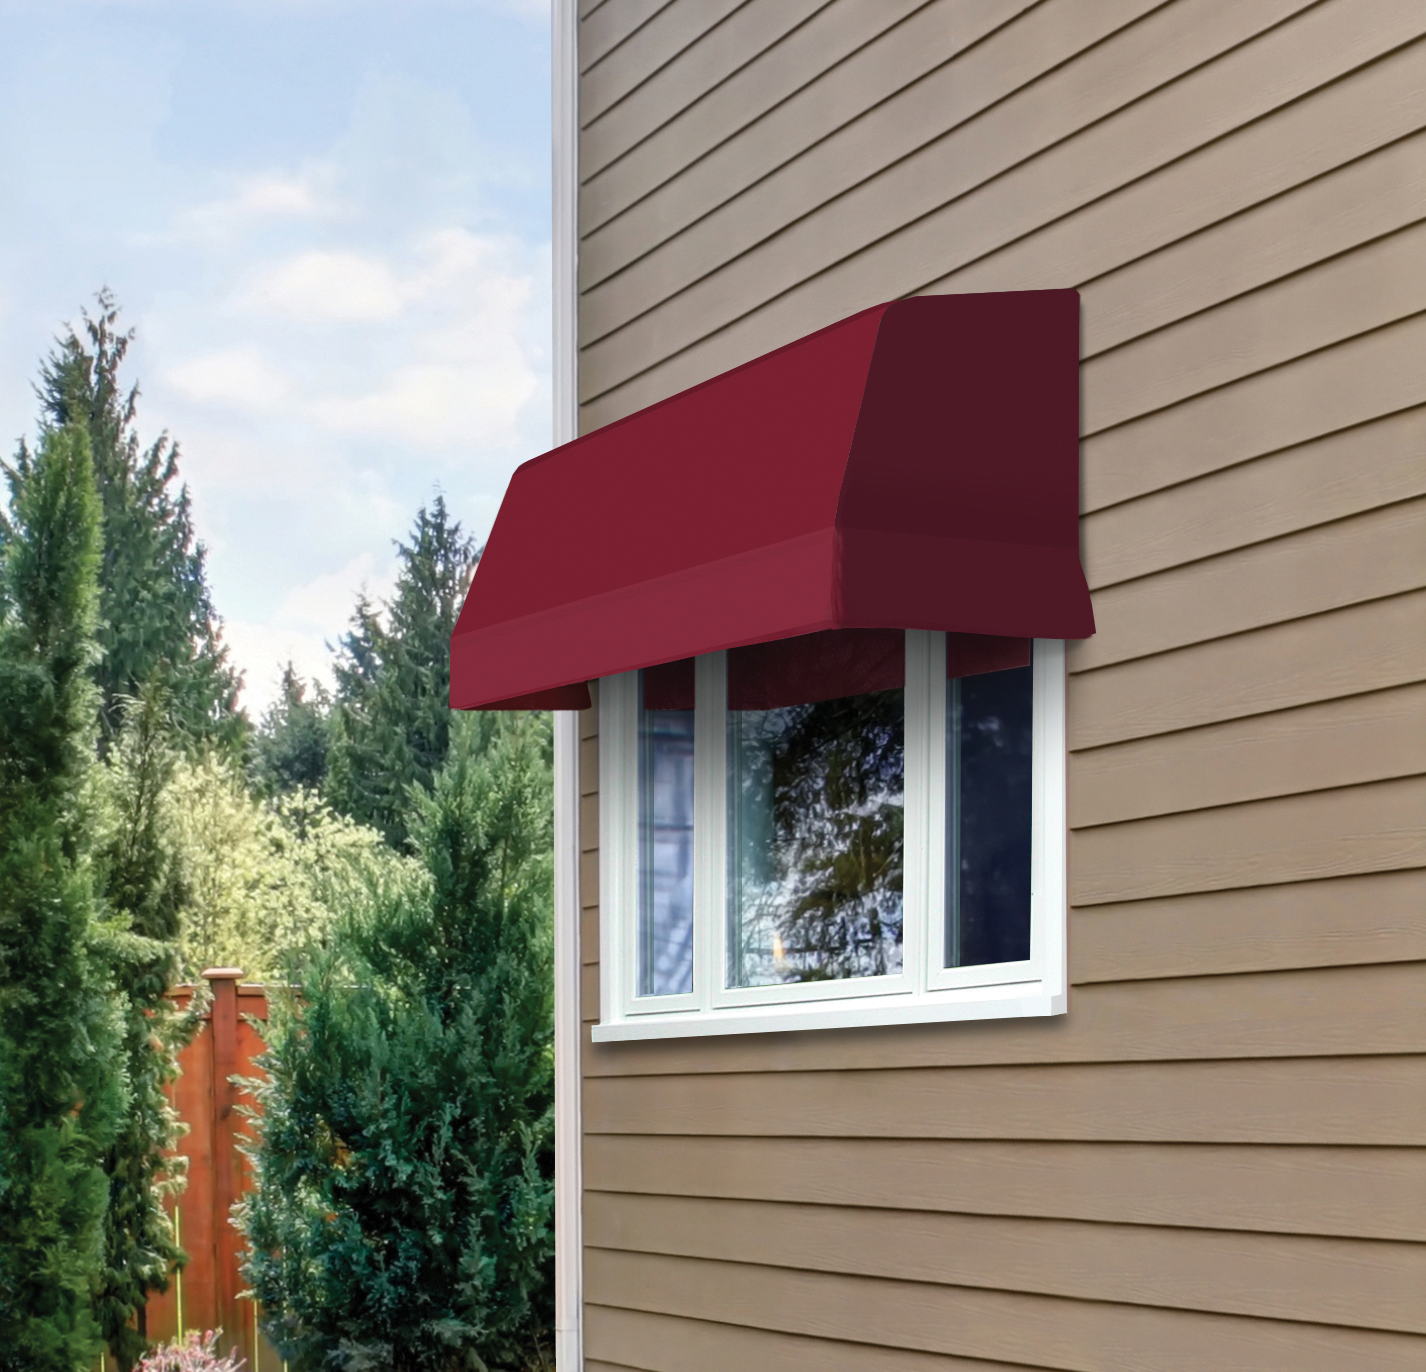 A Series 4700 Casement Window By Nuimage Awnings Suits This Window Perfectly It Is Shown Here With Sunbrella Fabric Fabric Awning Fabric Window Shades Awning